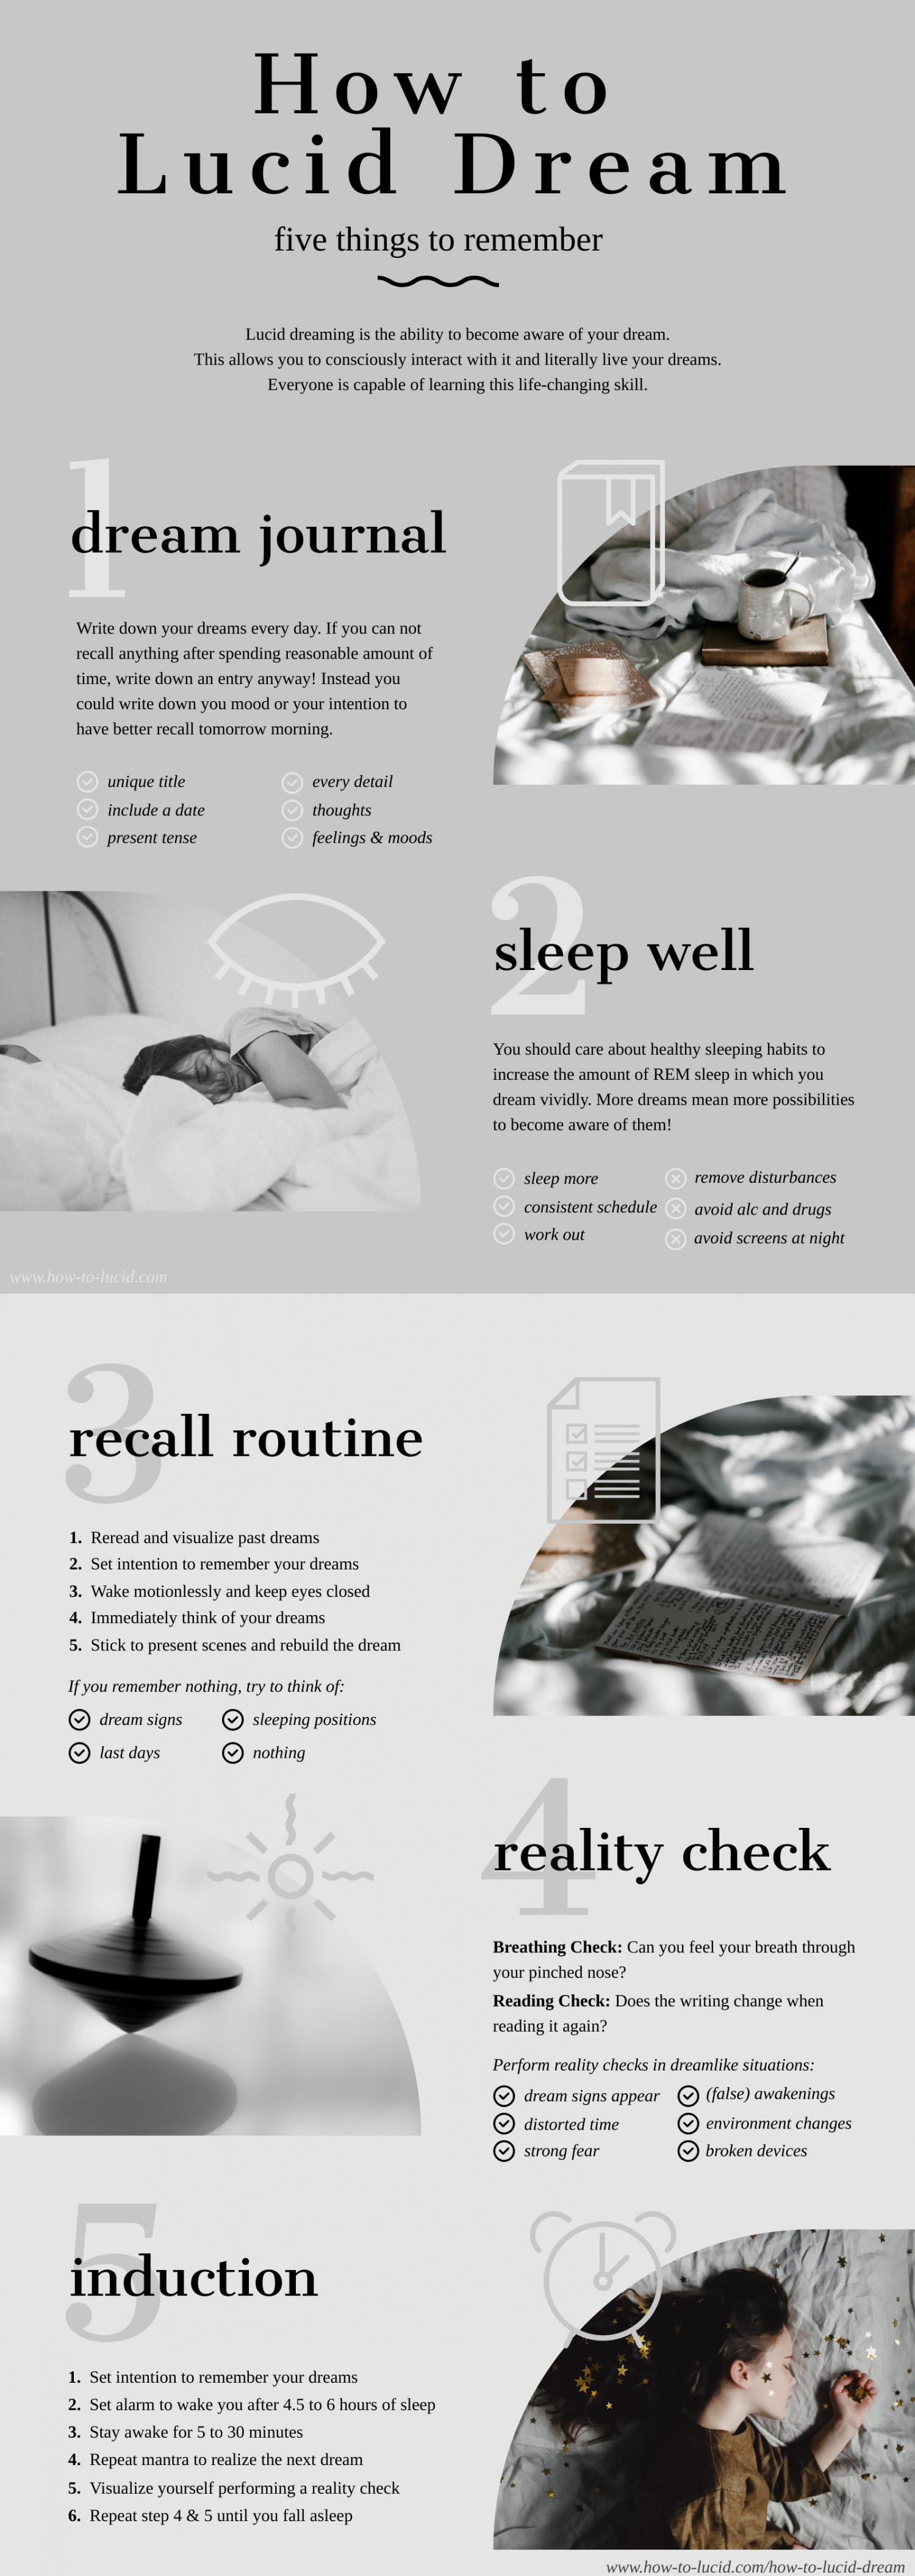 How to Lucid Dream -  Five Things to Remember Infographic